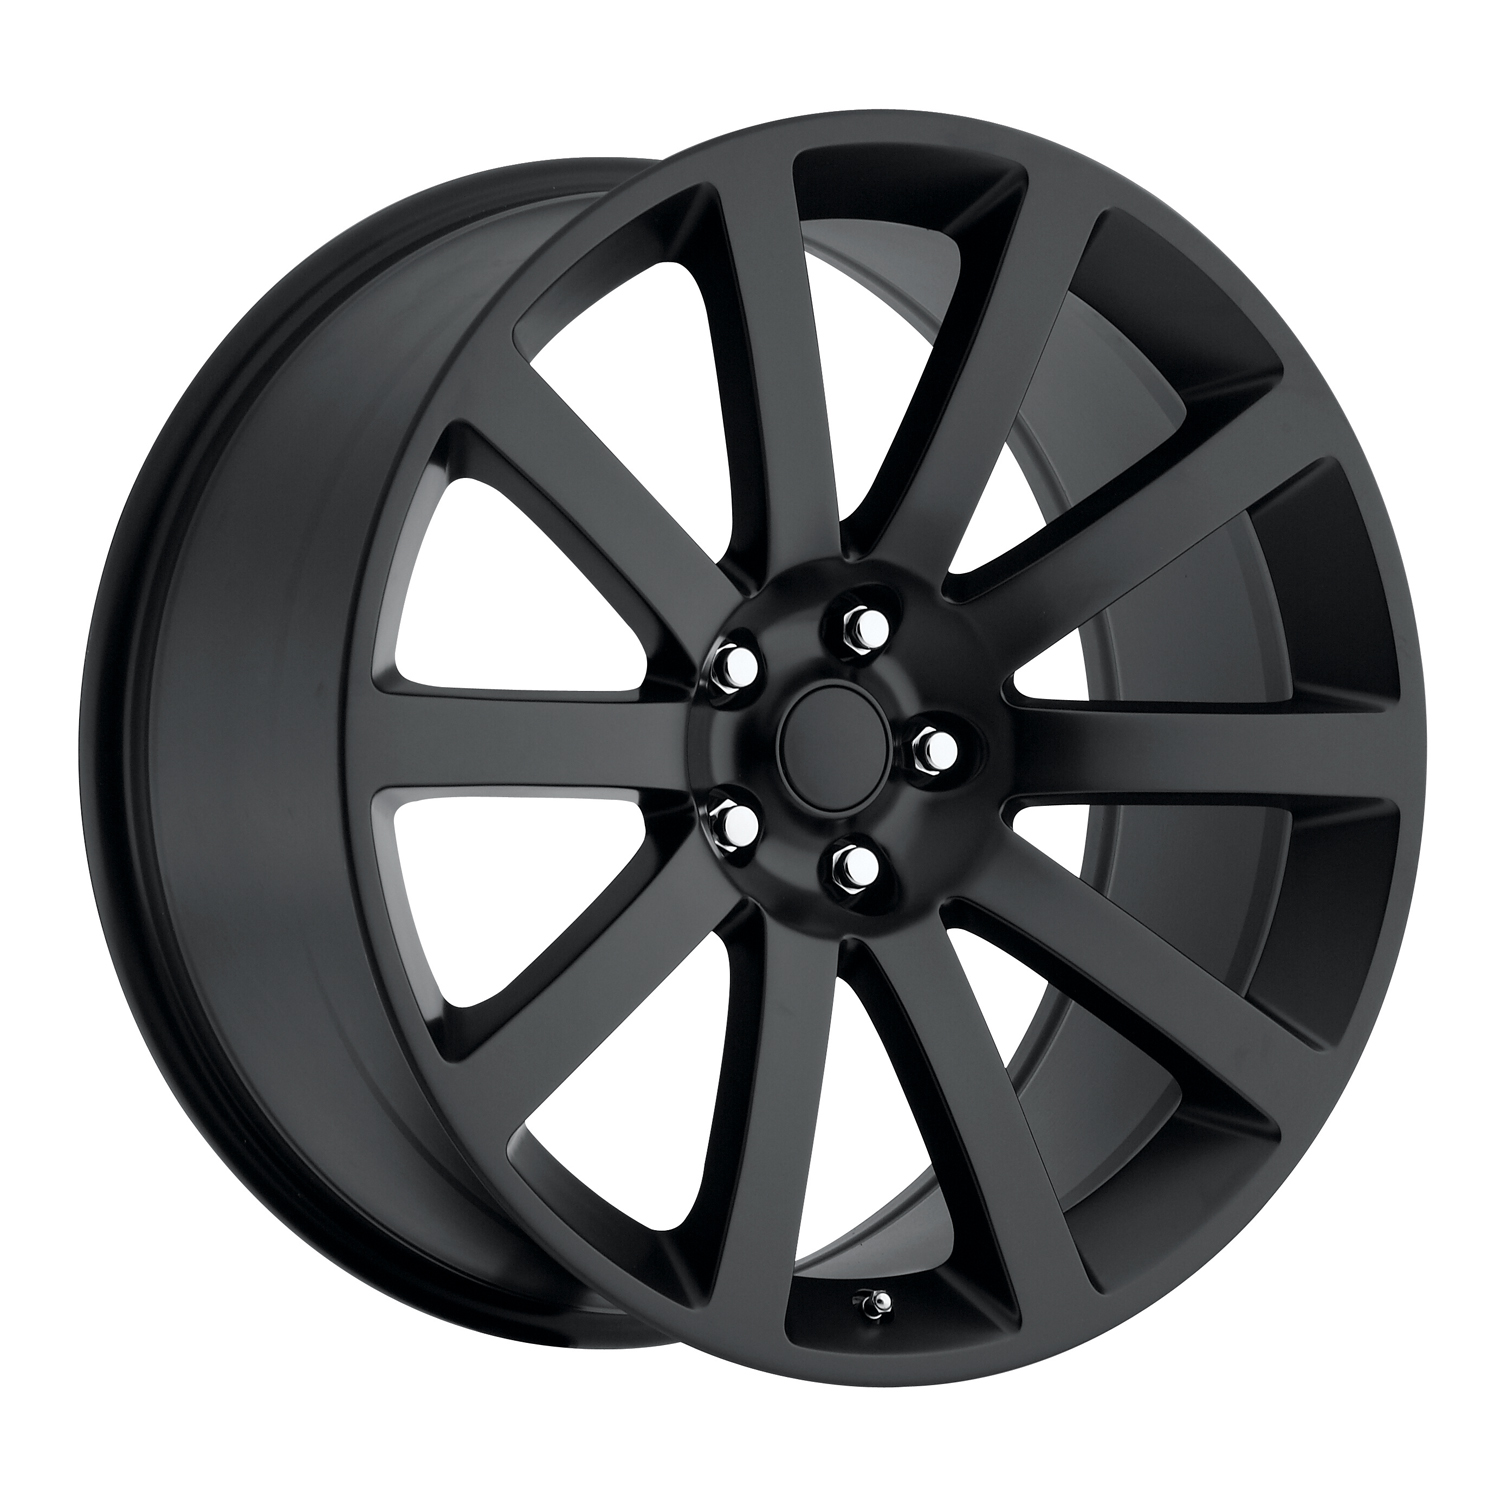 Chrysler 300C 2005-2010 20x9 5x115 +18 - SRT8 Style Wheel - Satin Black With Cap 